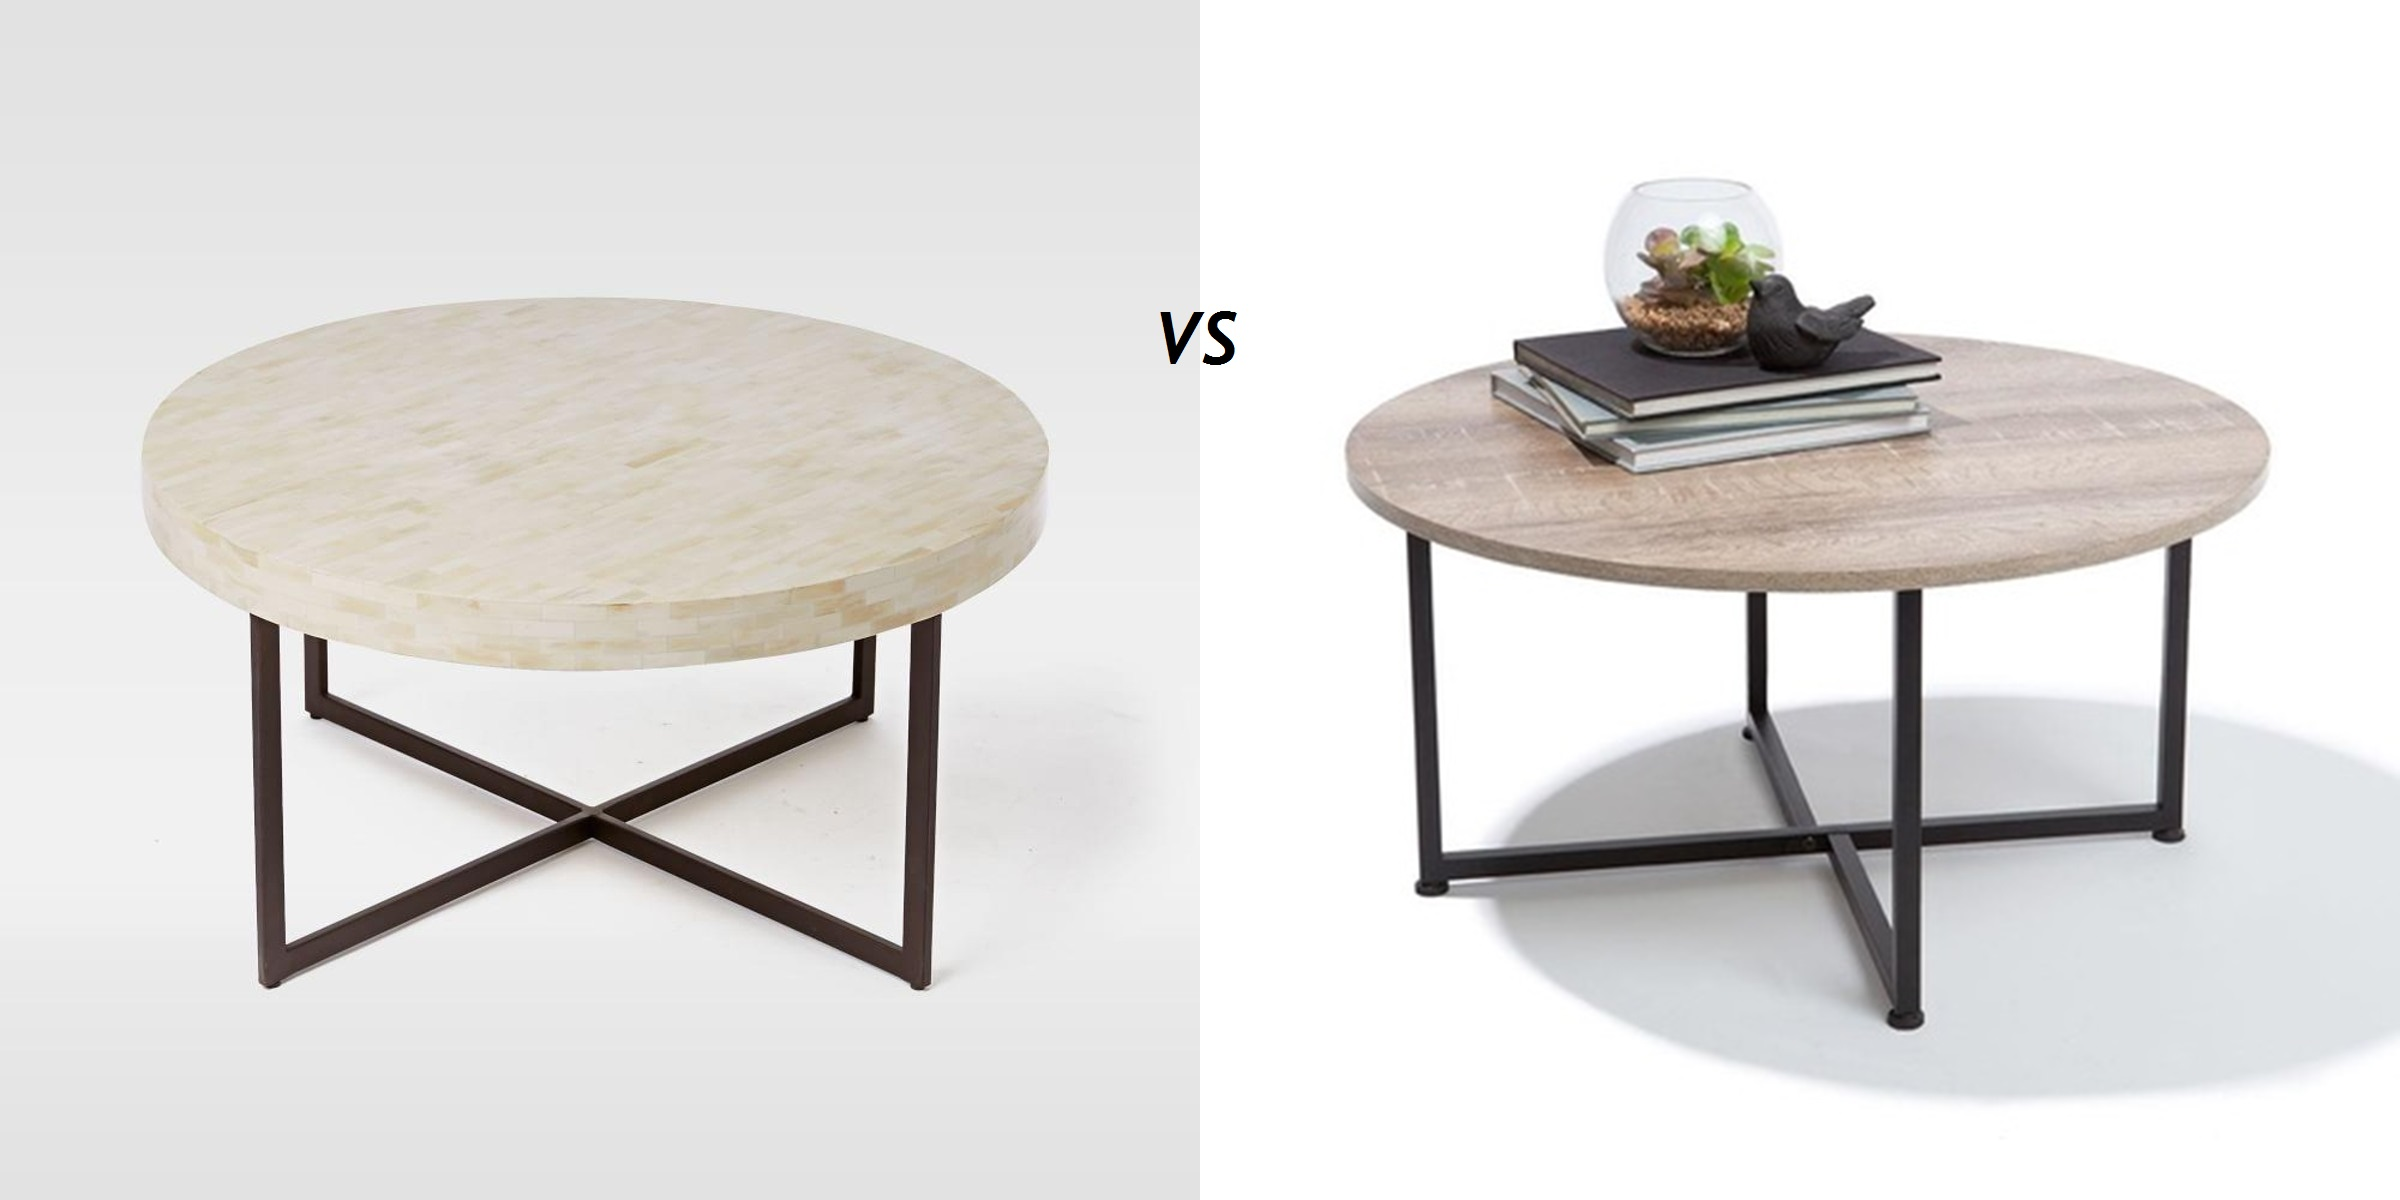 round dining room sets the outrageous favorite black side table luxe for less mortgage choice brisbane city wooden kmart coffee narrow glass console restoration corner bench wood